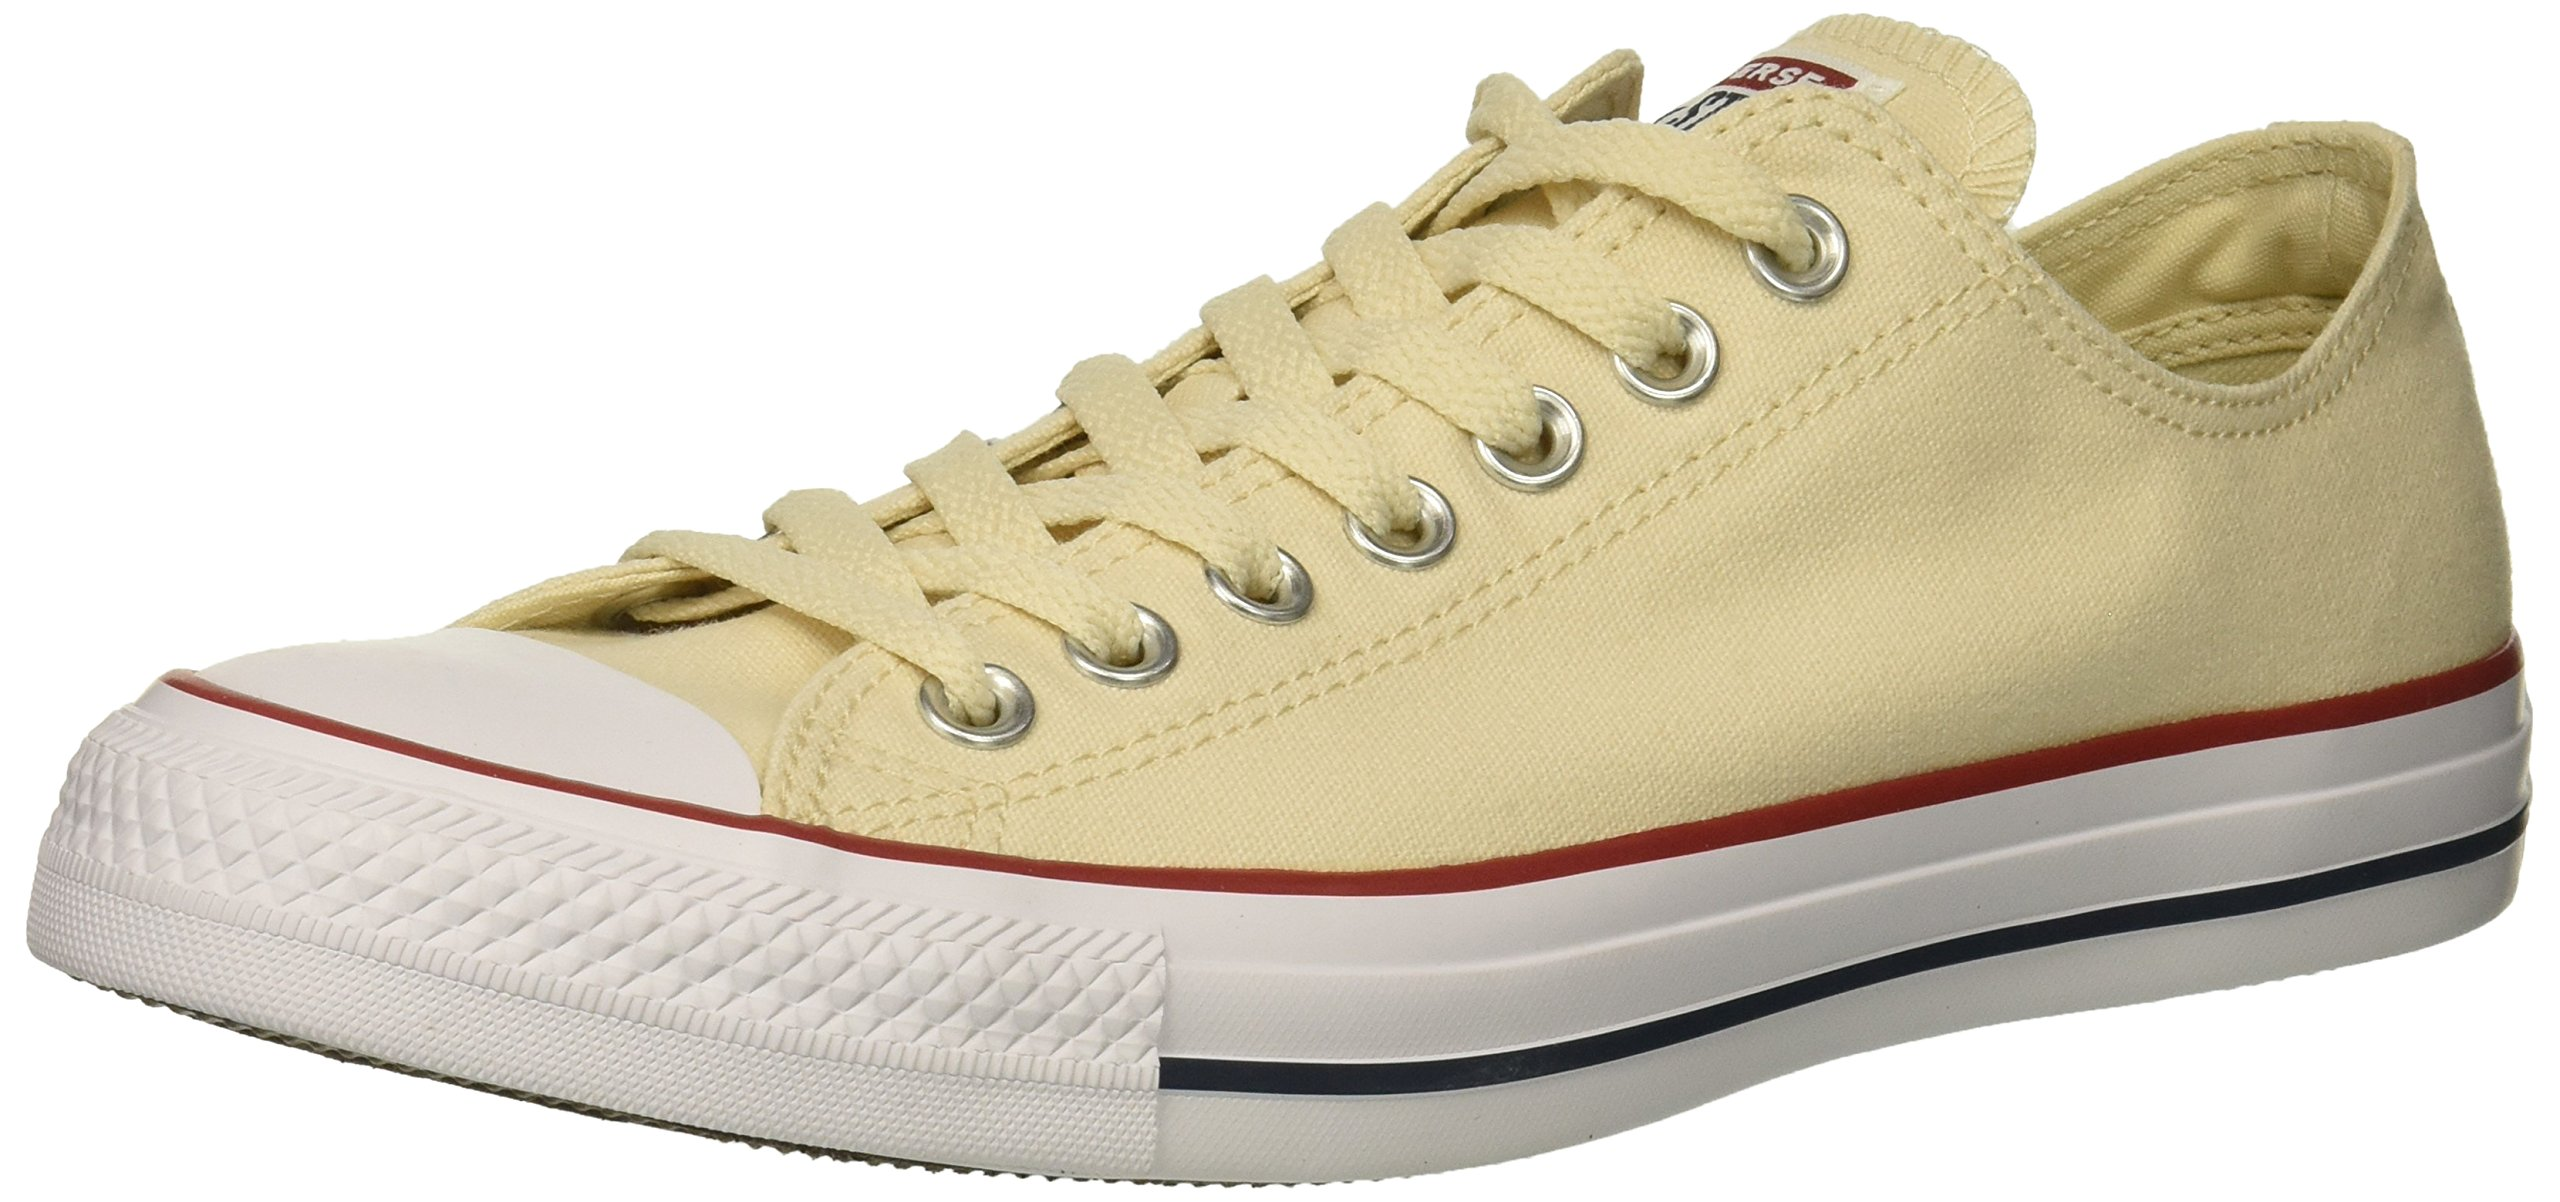 Converse Chuck Taylor All Star Low Top Sneaker, Natural Ivory, 7.5 M US